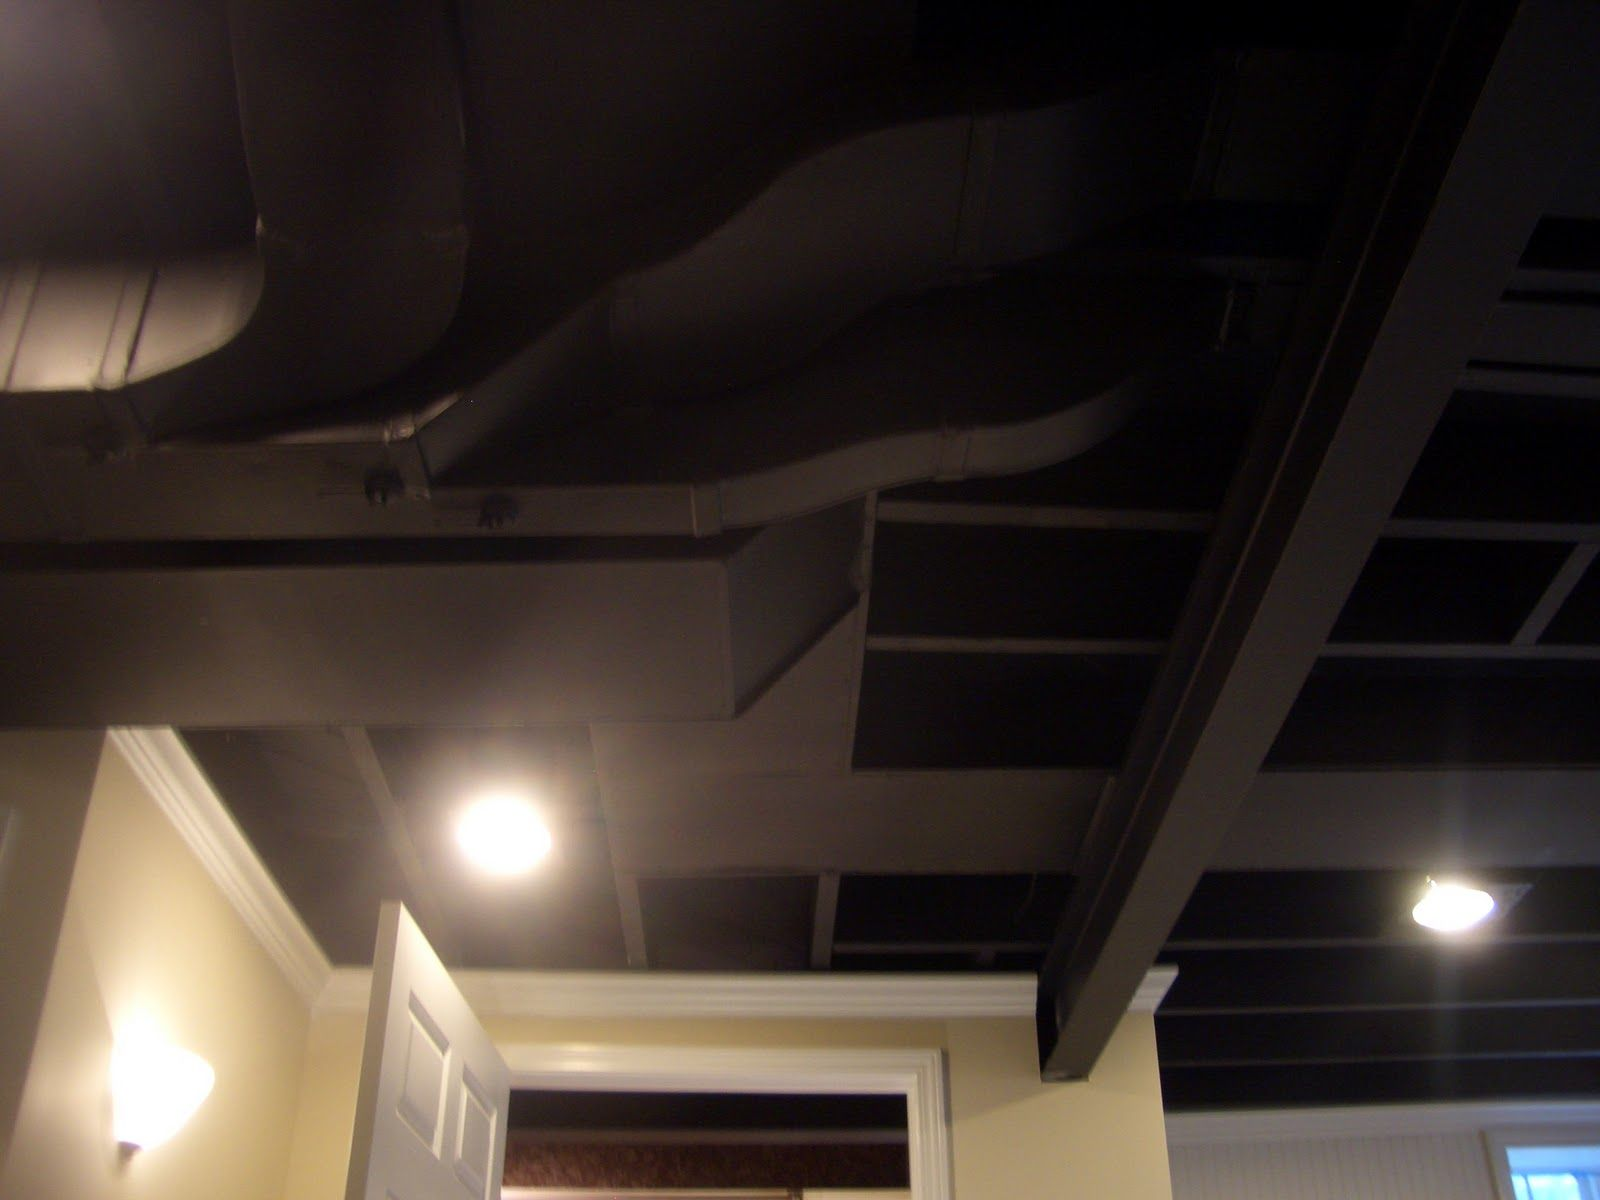 Painted Basement Ceilings On Pinterest Basement Ceilings